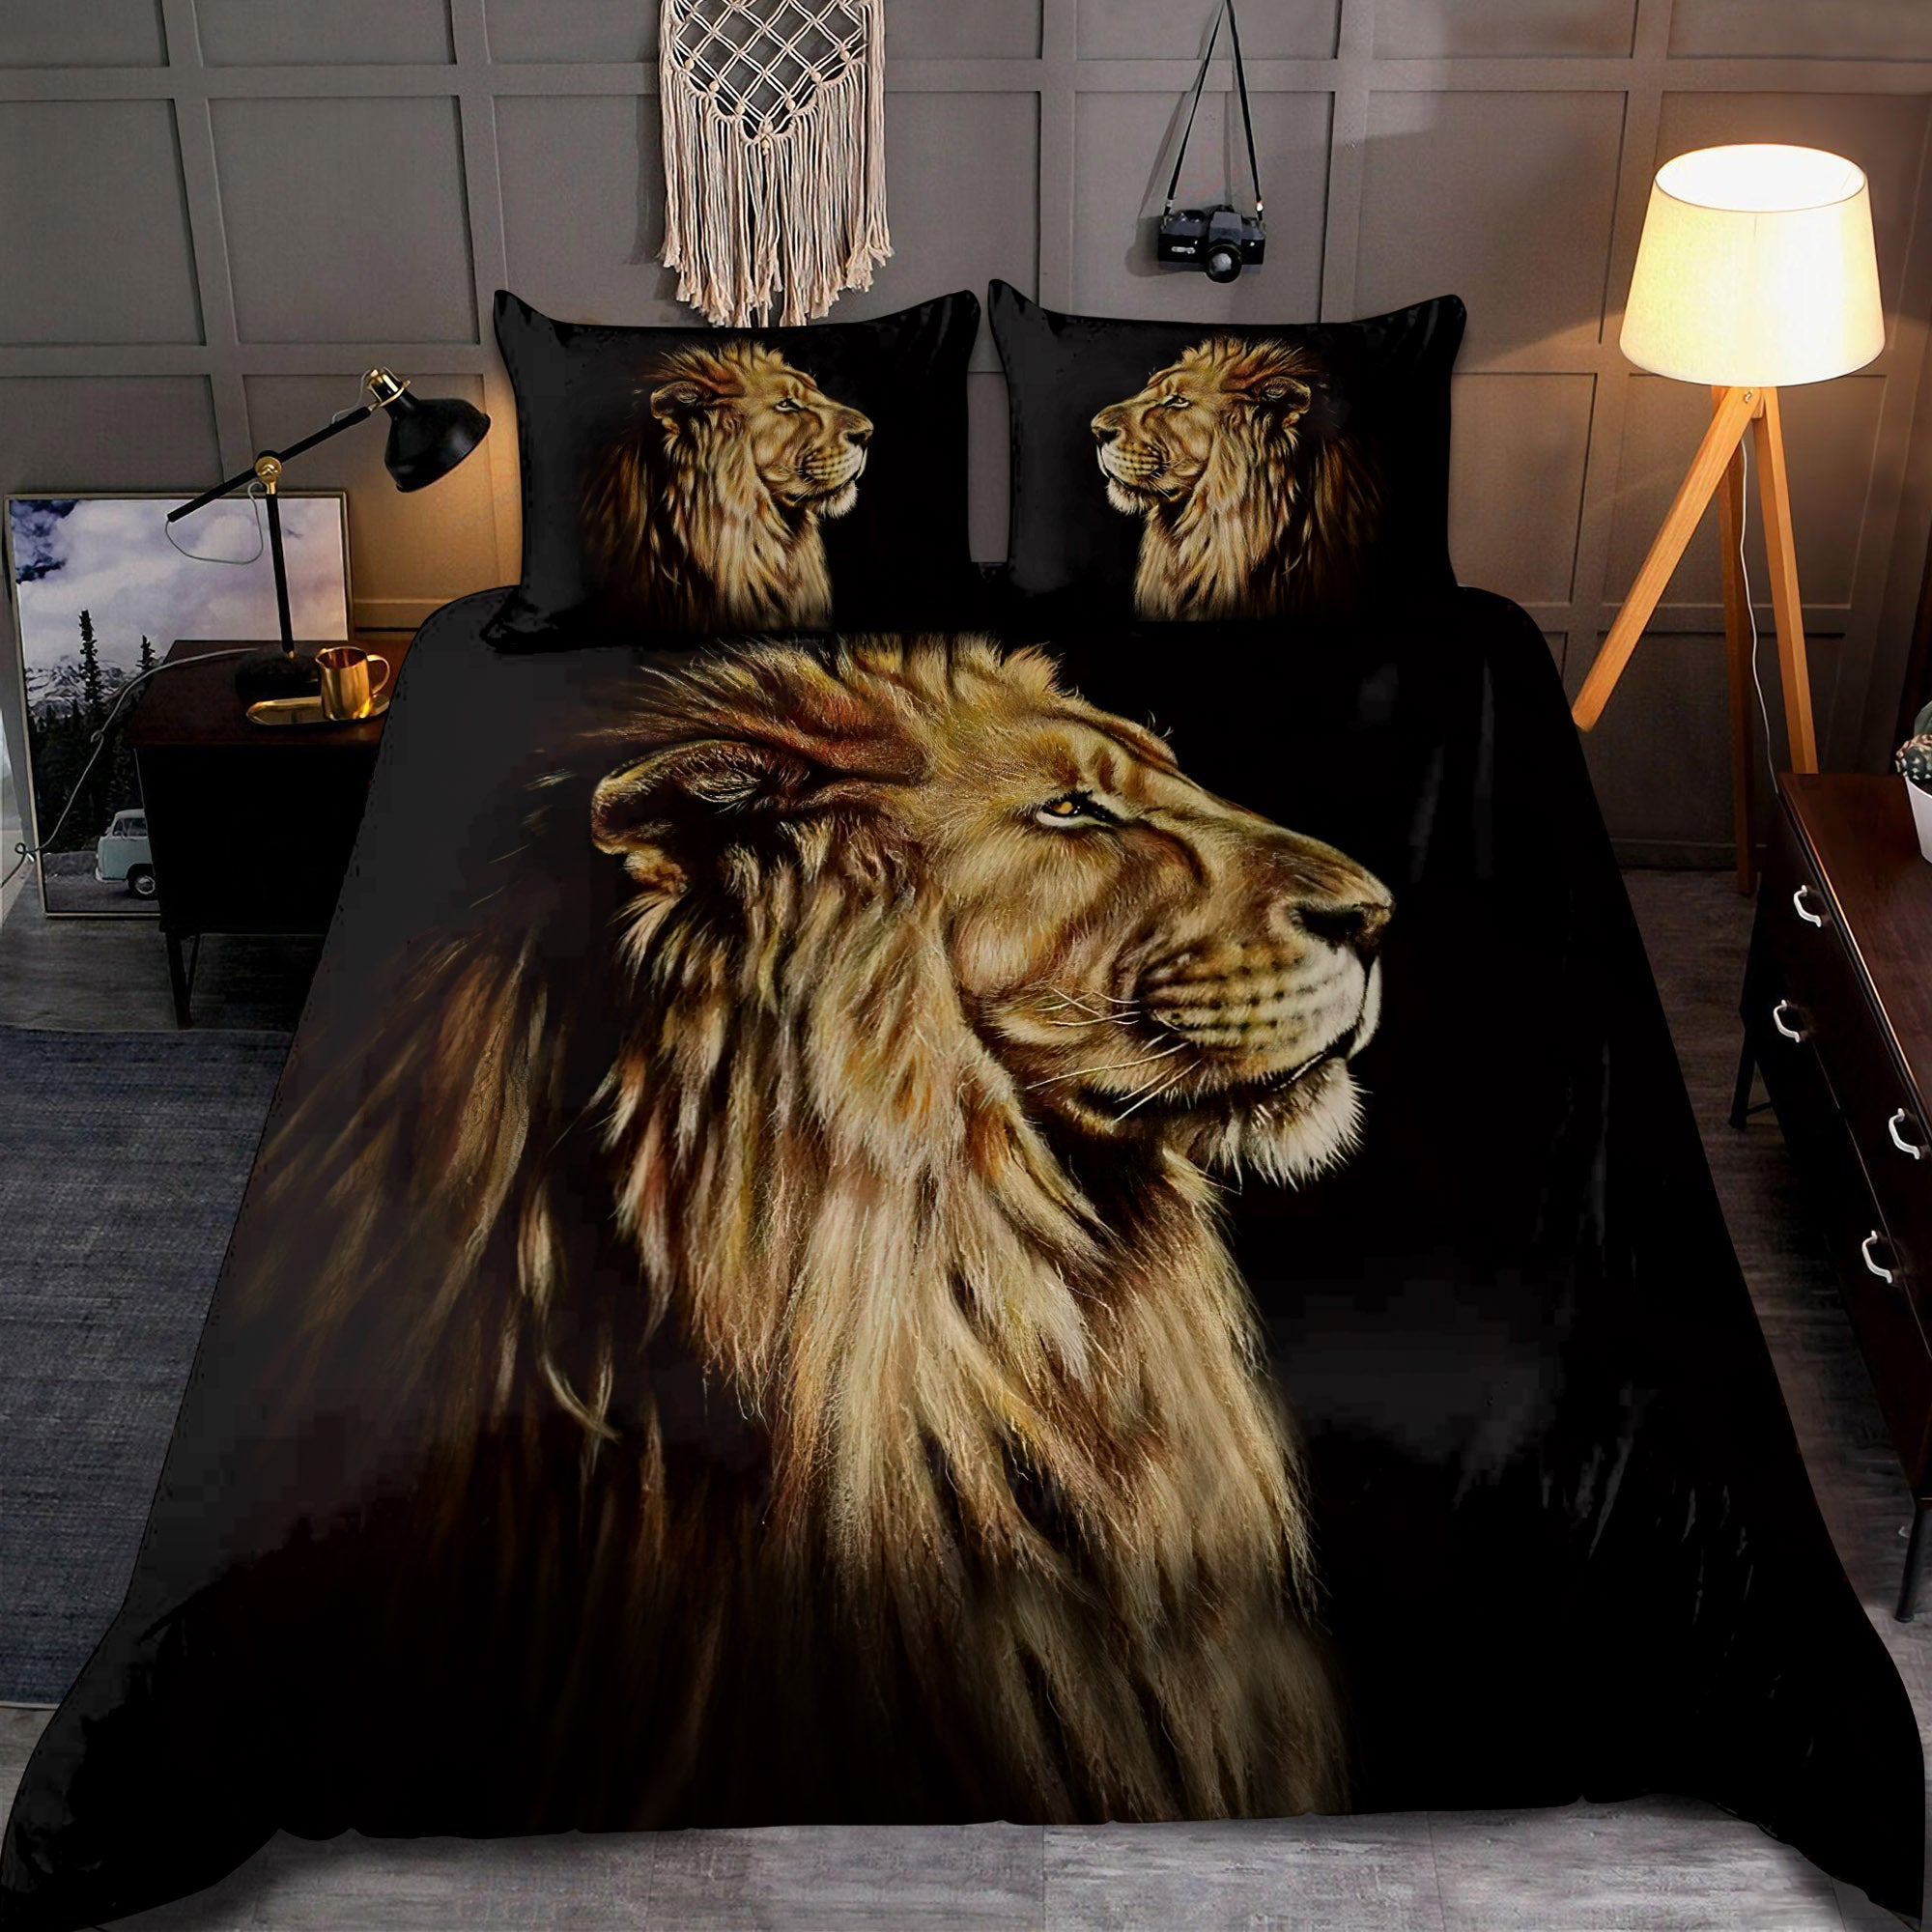 Lion Portrait: The King 3D All Over Printed Bedding Set